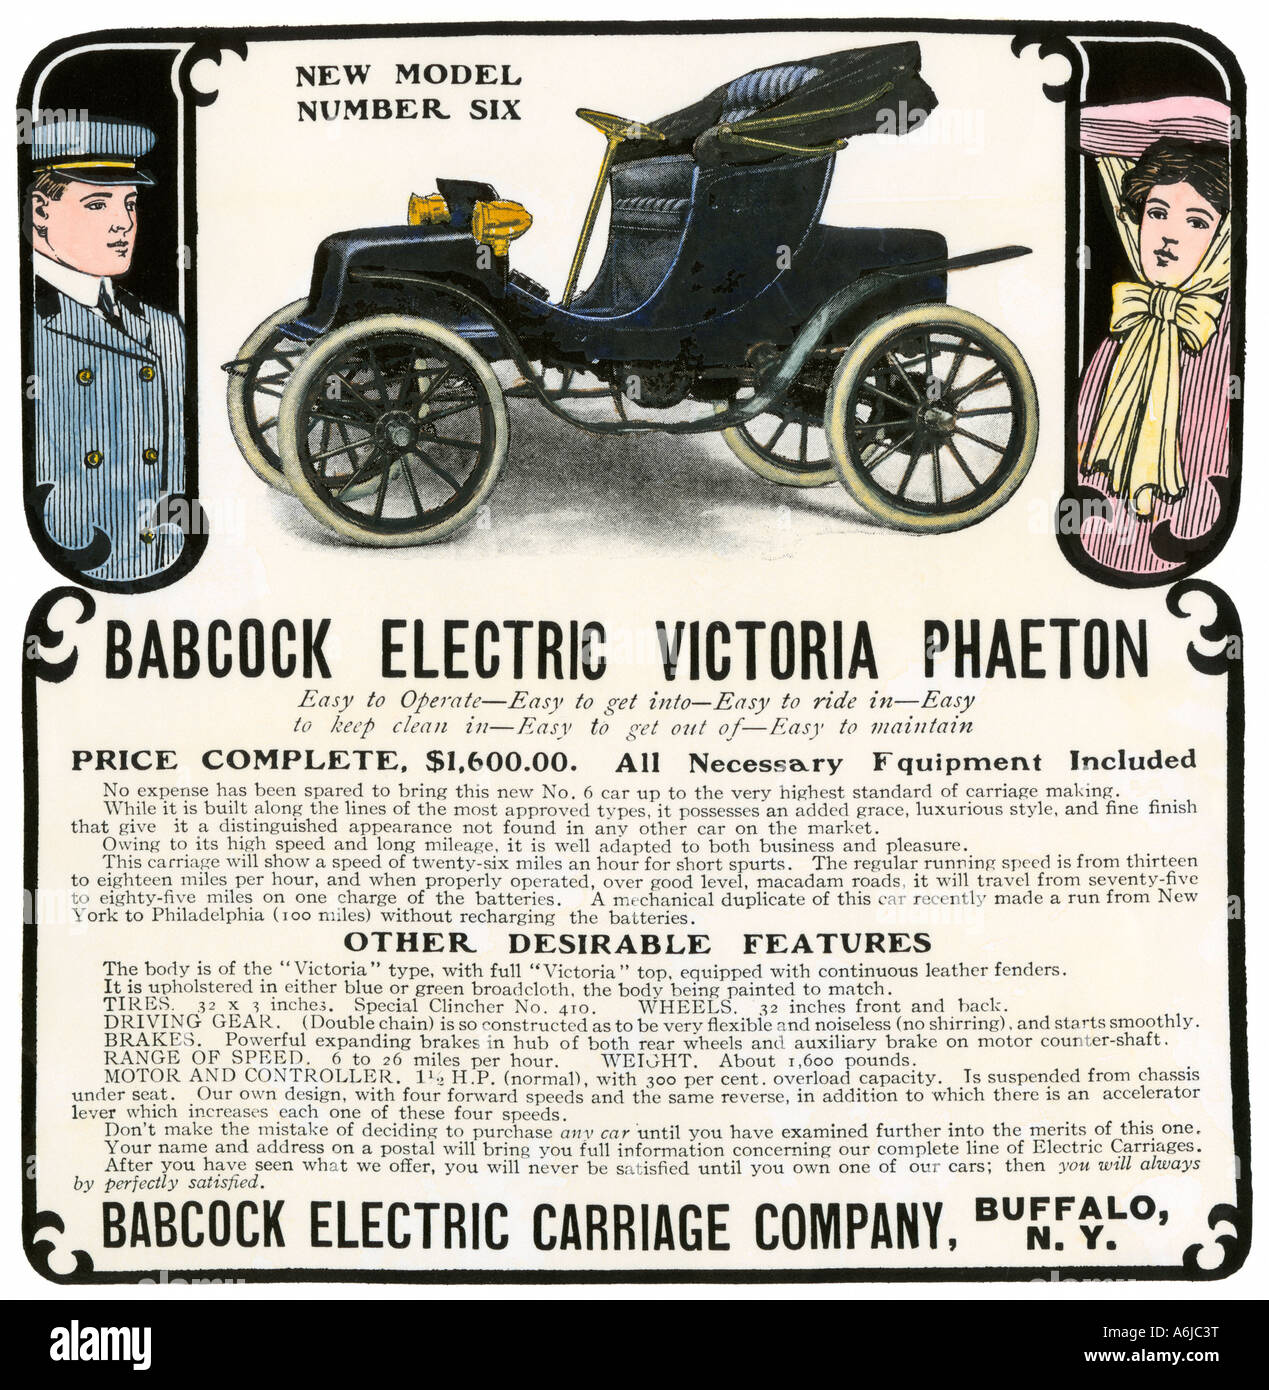 Early electric car ad for the Babcock Electric Victoria Phaeton 1907. Hand-colored woodcut - Stock Image